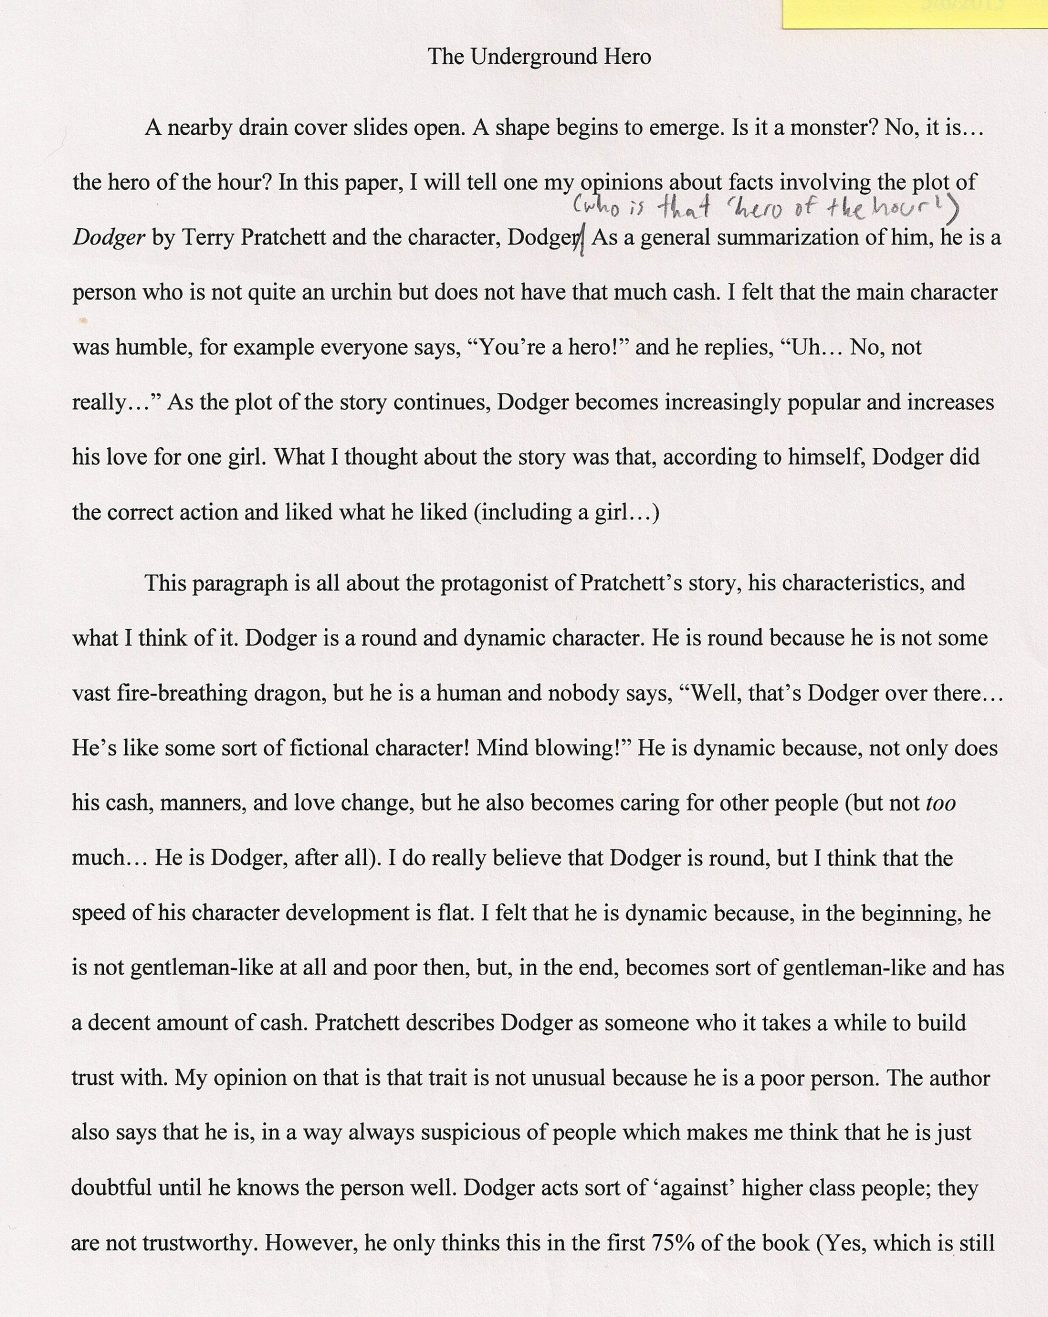 018 Essay Example Satire Essays Global Warming On Heroes My Hero How To Write An Argumentative The Undergro Persuasive About Study Mode Good Paper Fearsome Satirical Topics For High School Examples Gun Control Full